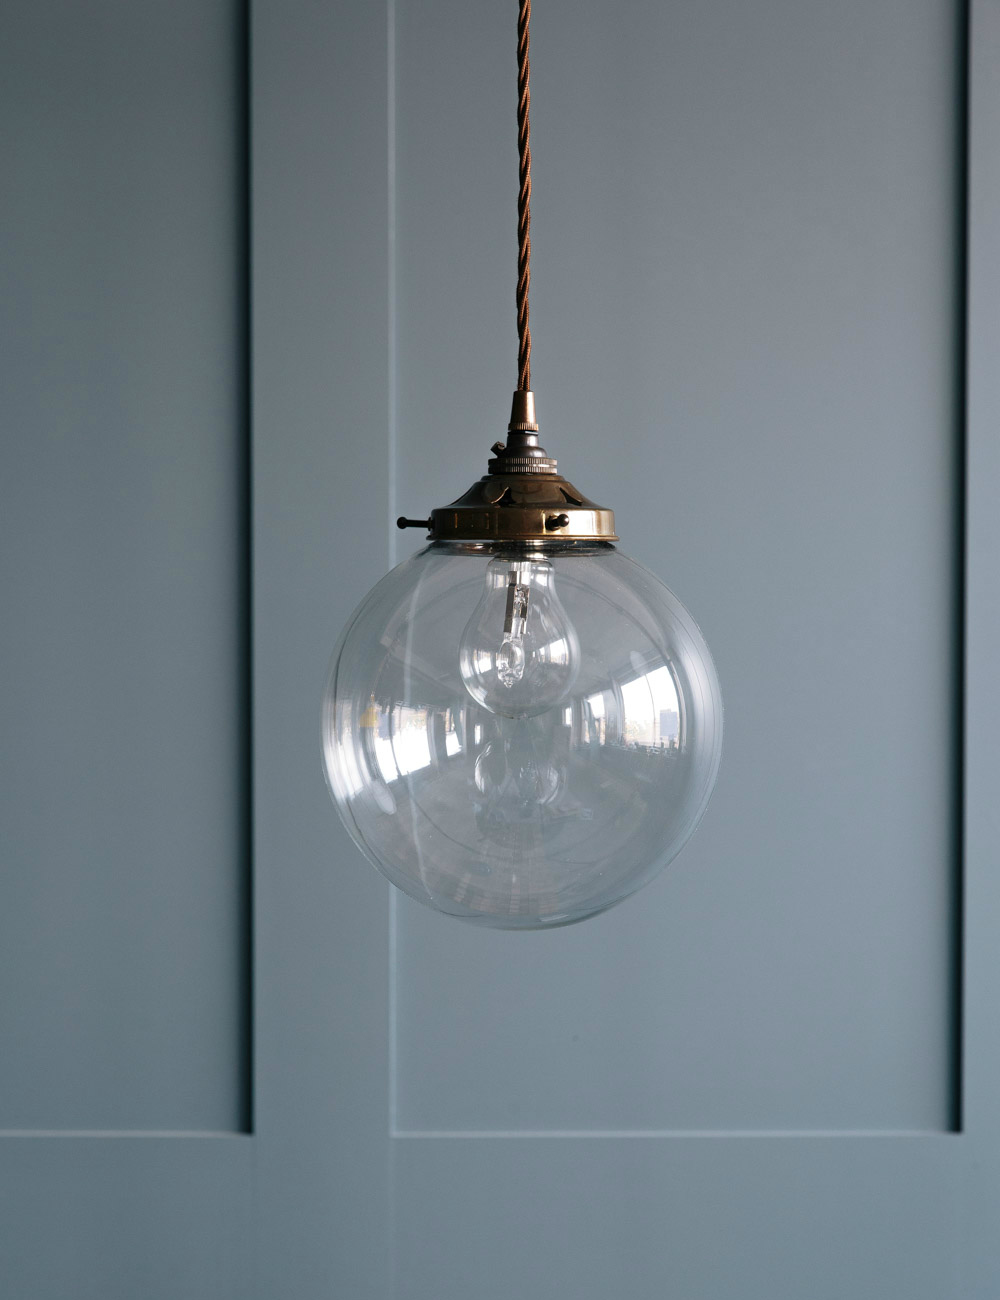 Blown Glass Pendant Lights Globe Blown Glass Pendant Light At Rose & Grey